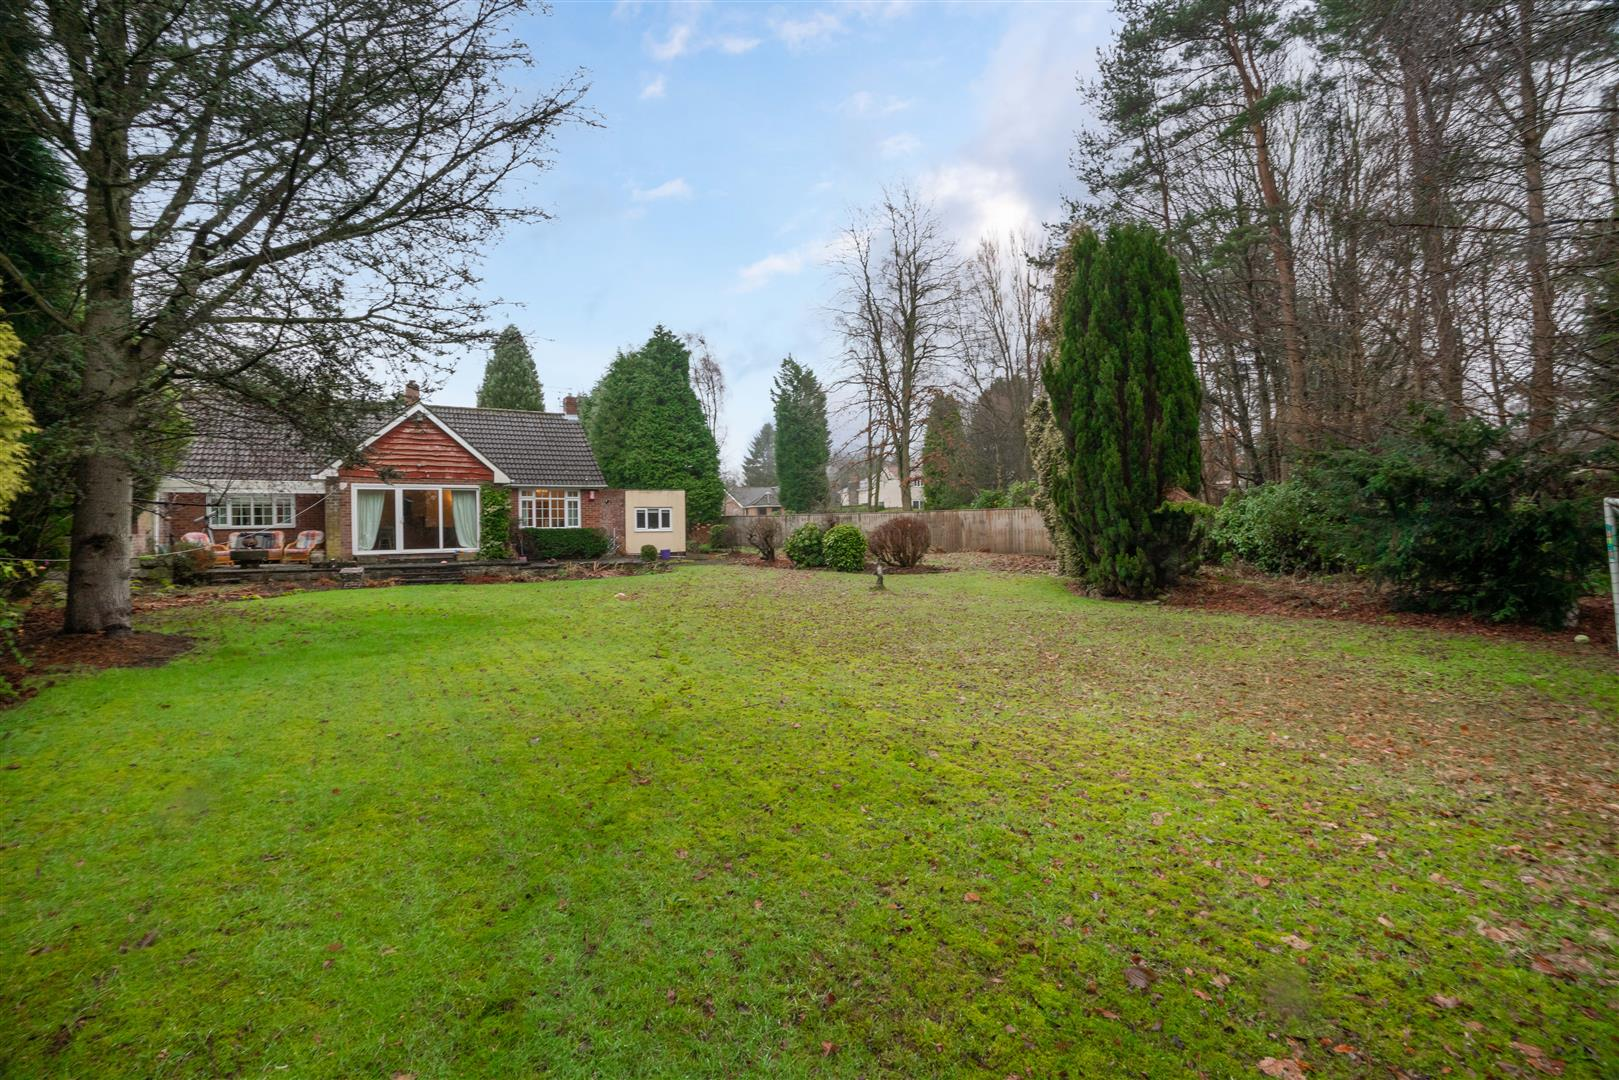 4 bed detached bungalow for sale in Newcastle Upon Tyne, NE20 9LQ - Property Image 1